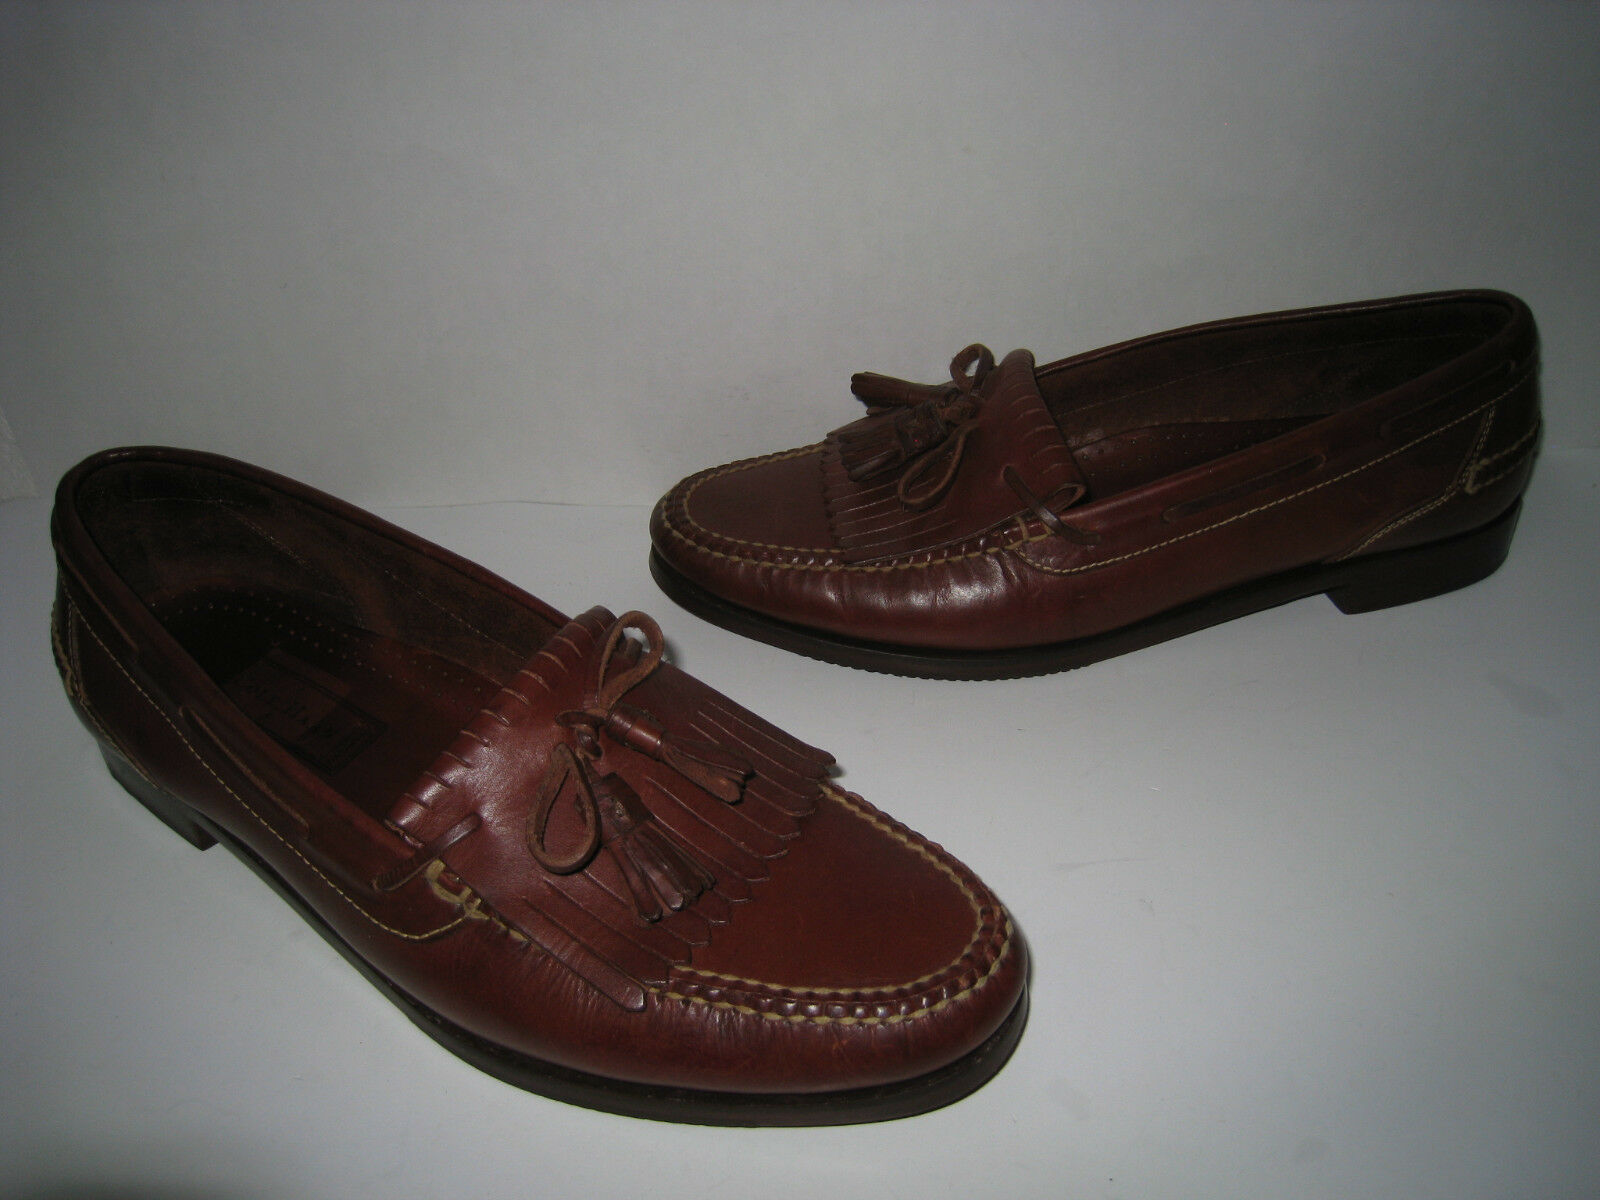 COLE HAAN COUNTRY COGNAC LEATHER KILTIE TASSEL LOAFER SIZE US 14M HOT  BRAZIL